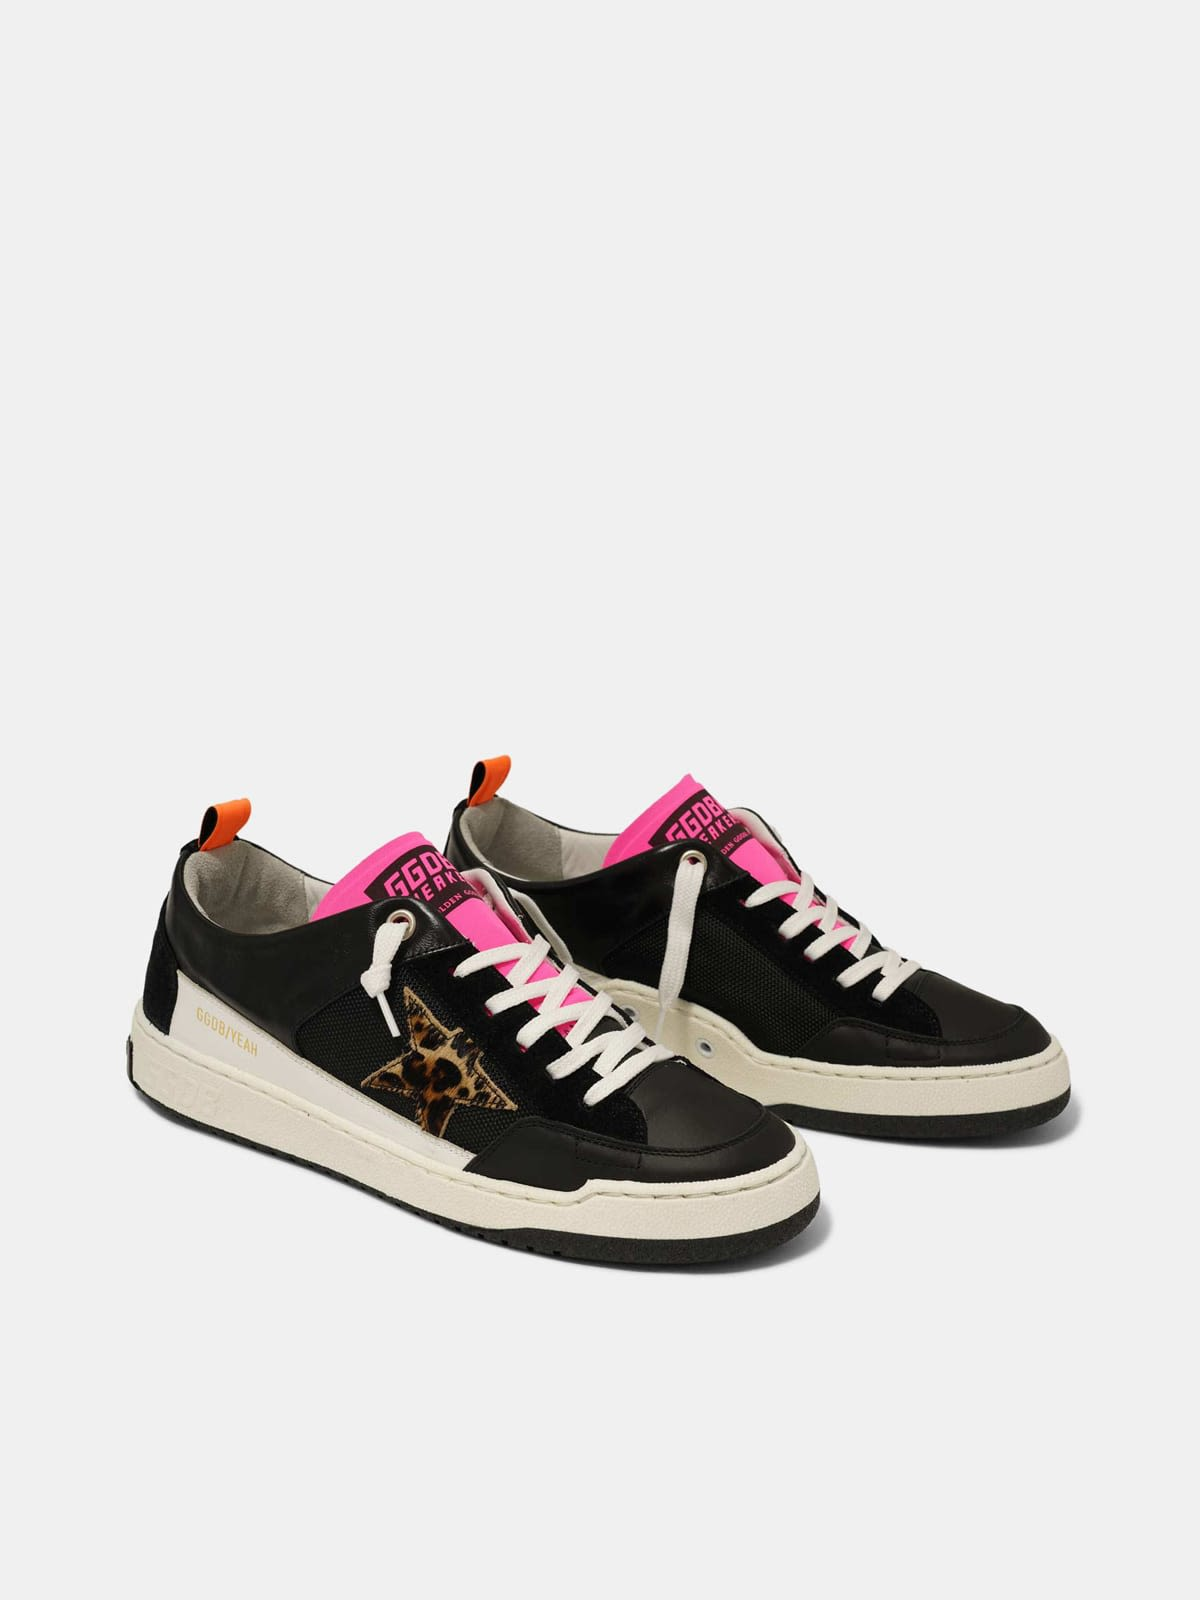 Black Yeah! sneakers with leopard-print star